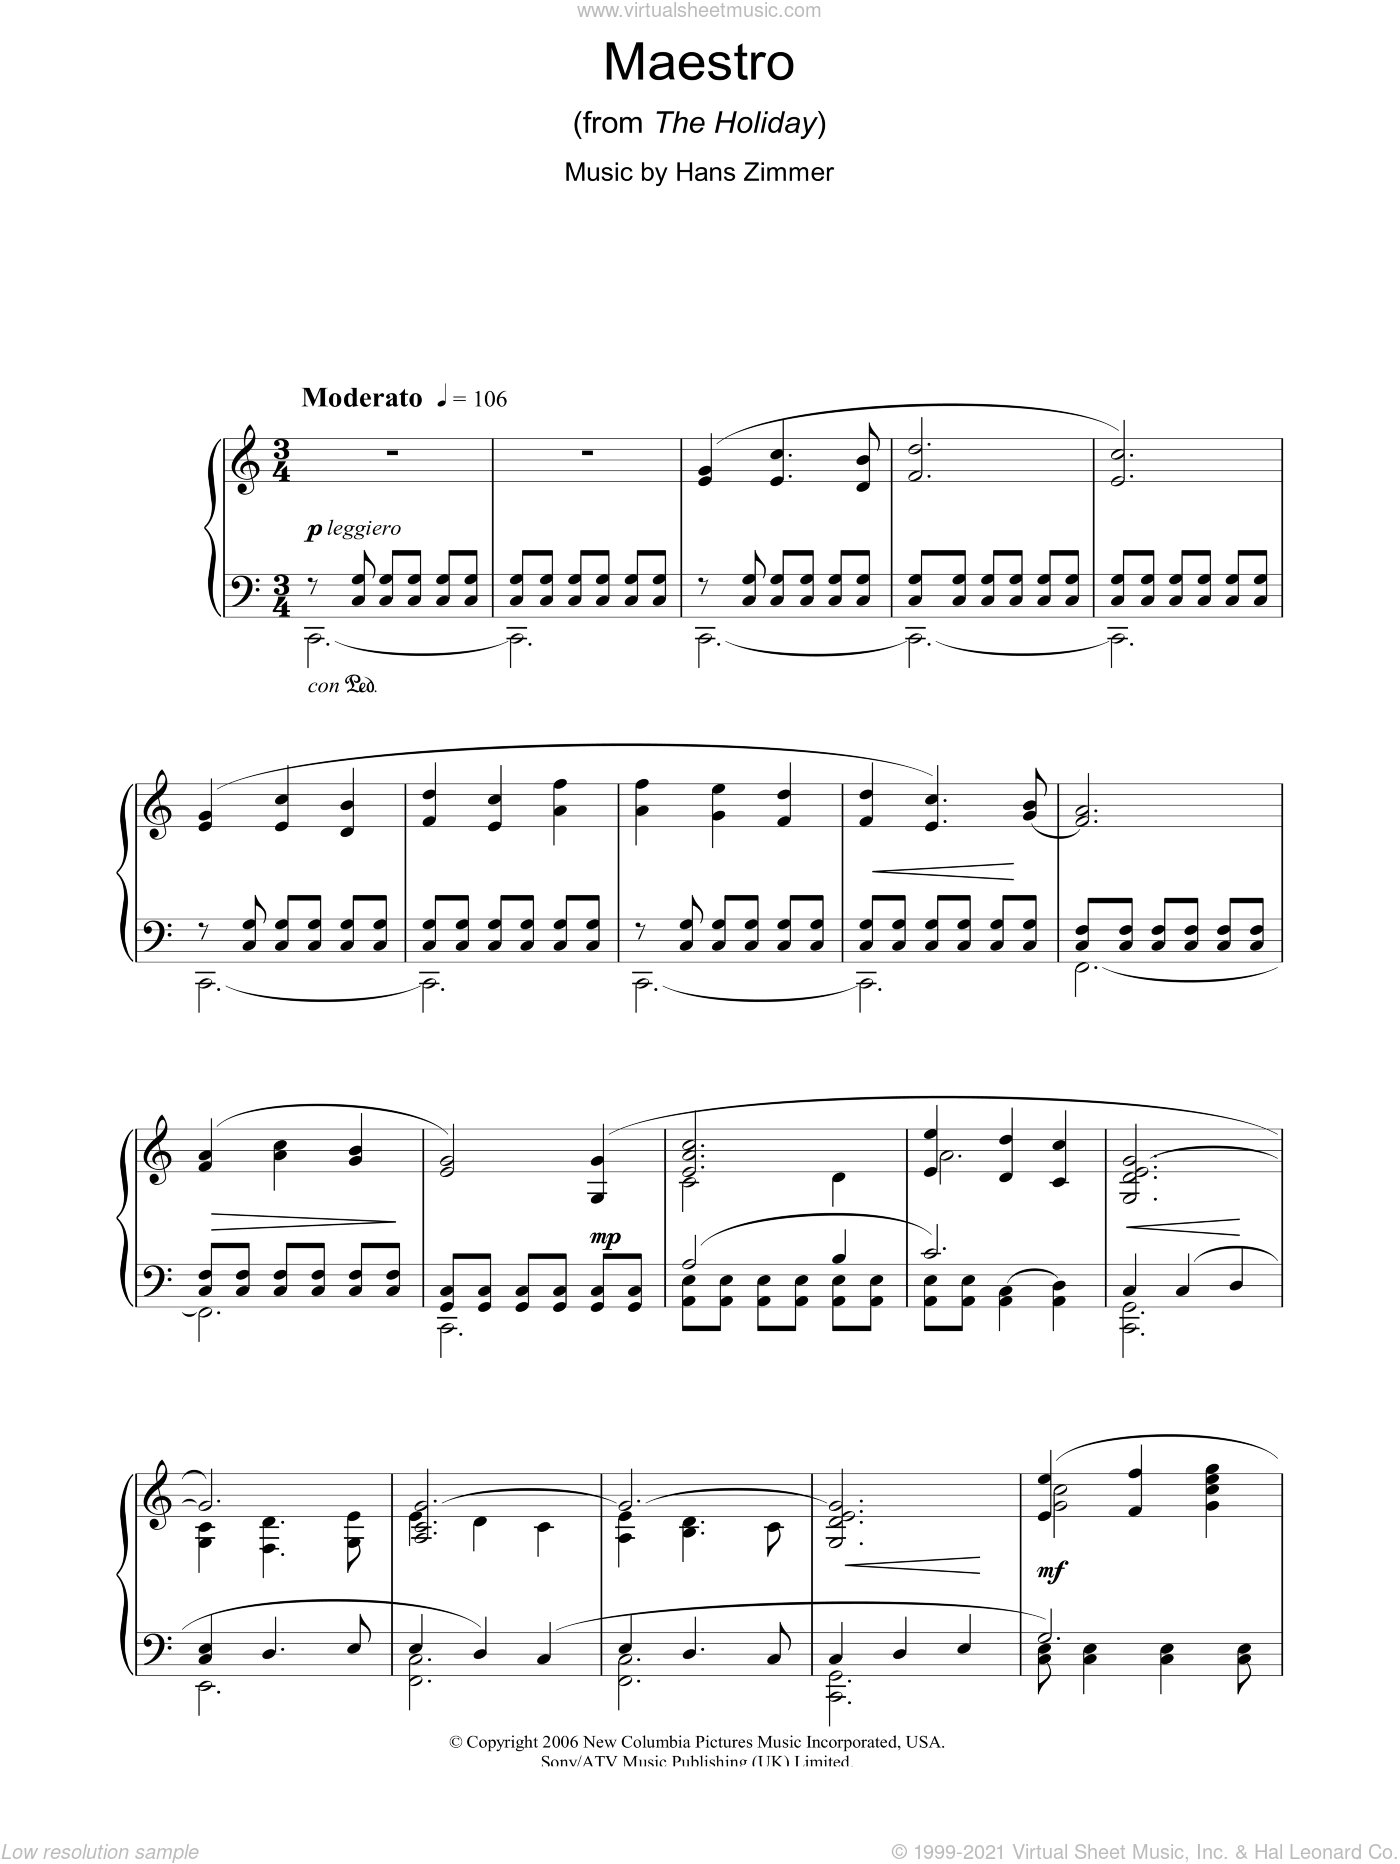 Maestro (from The Holiday), (intermediate) sheet music for piano solo by Hans Zimmer, intermediate skill level